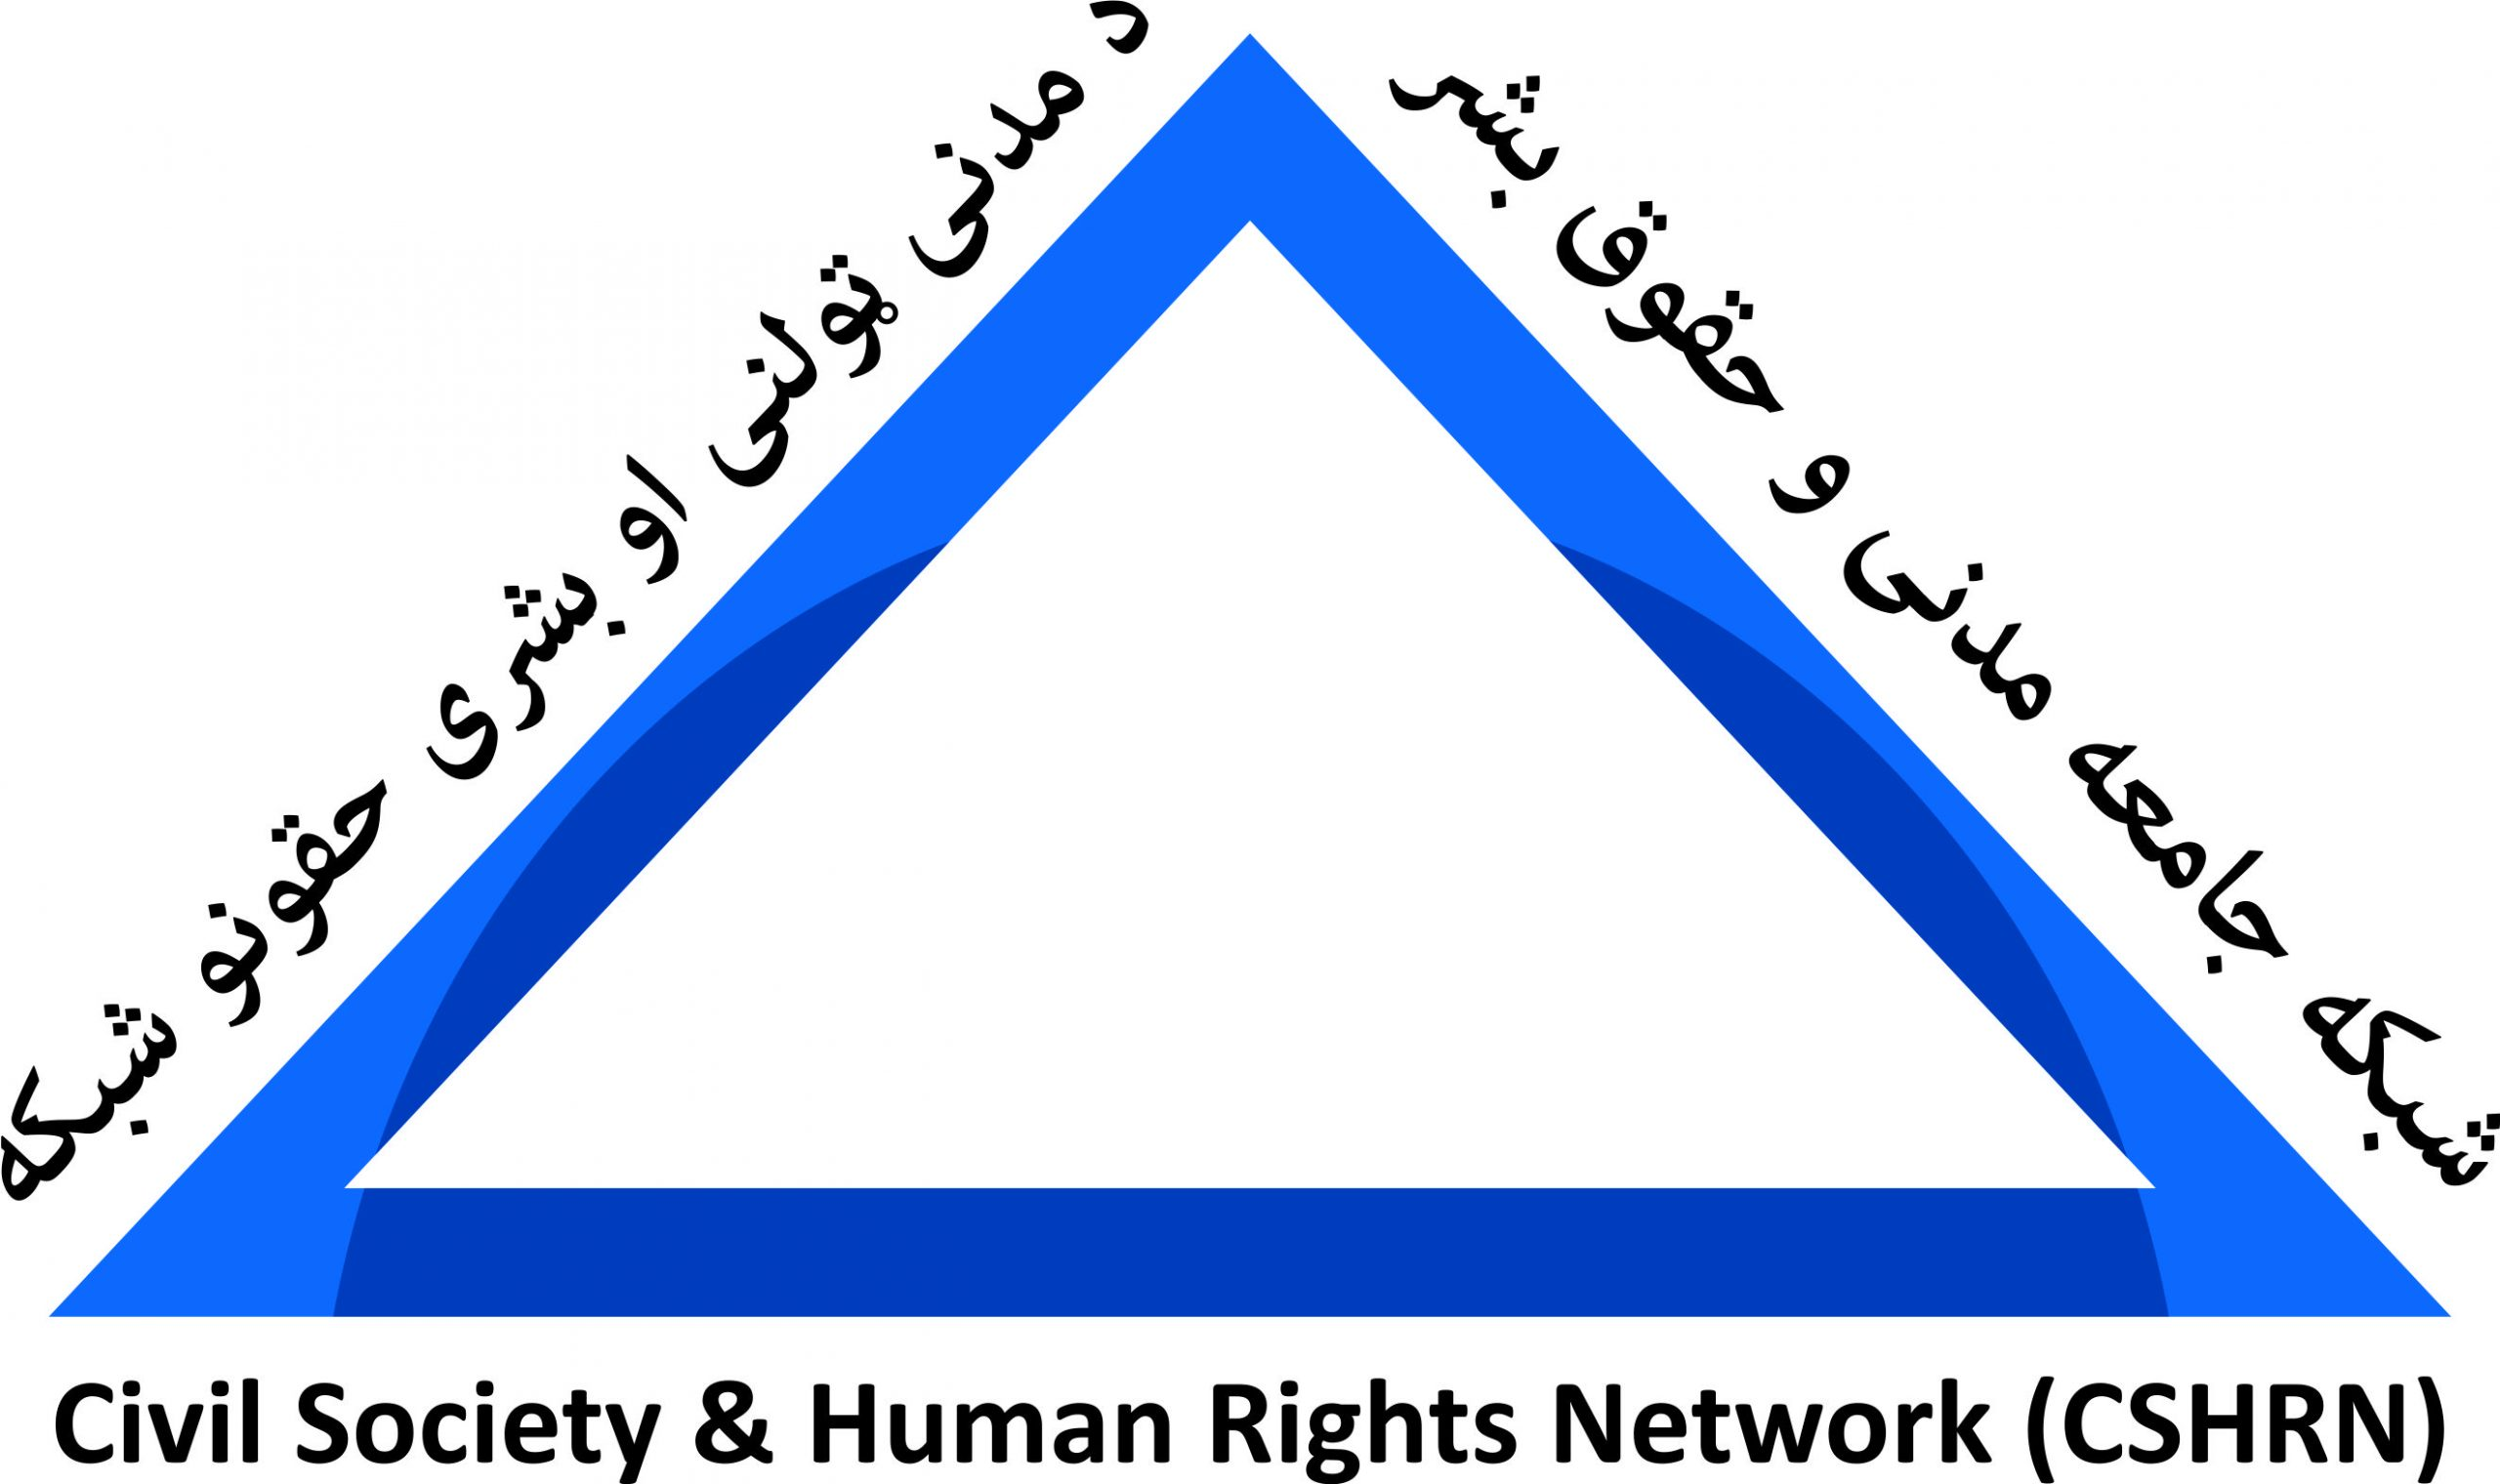 Civil Society & Human Rights Network – CSHRN